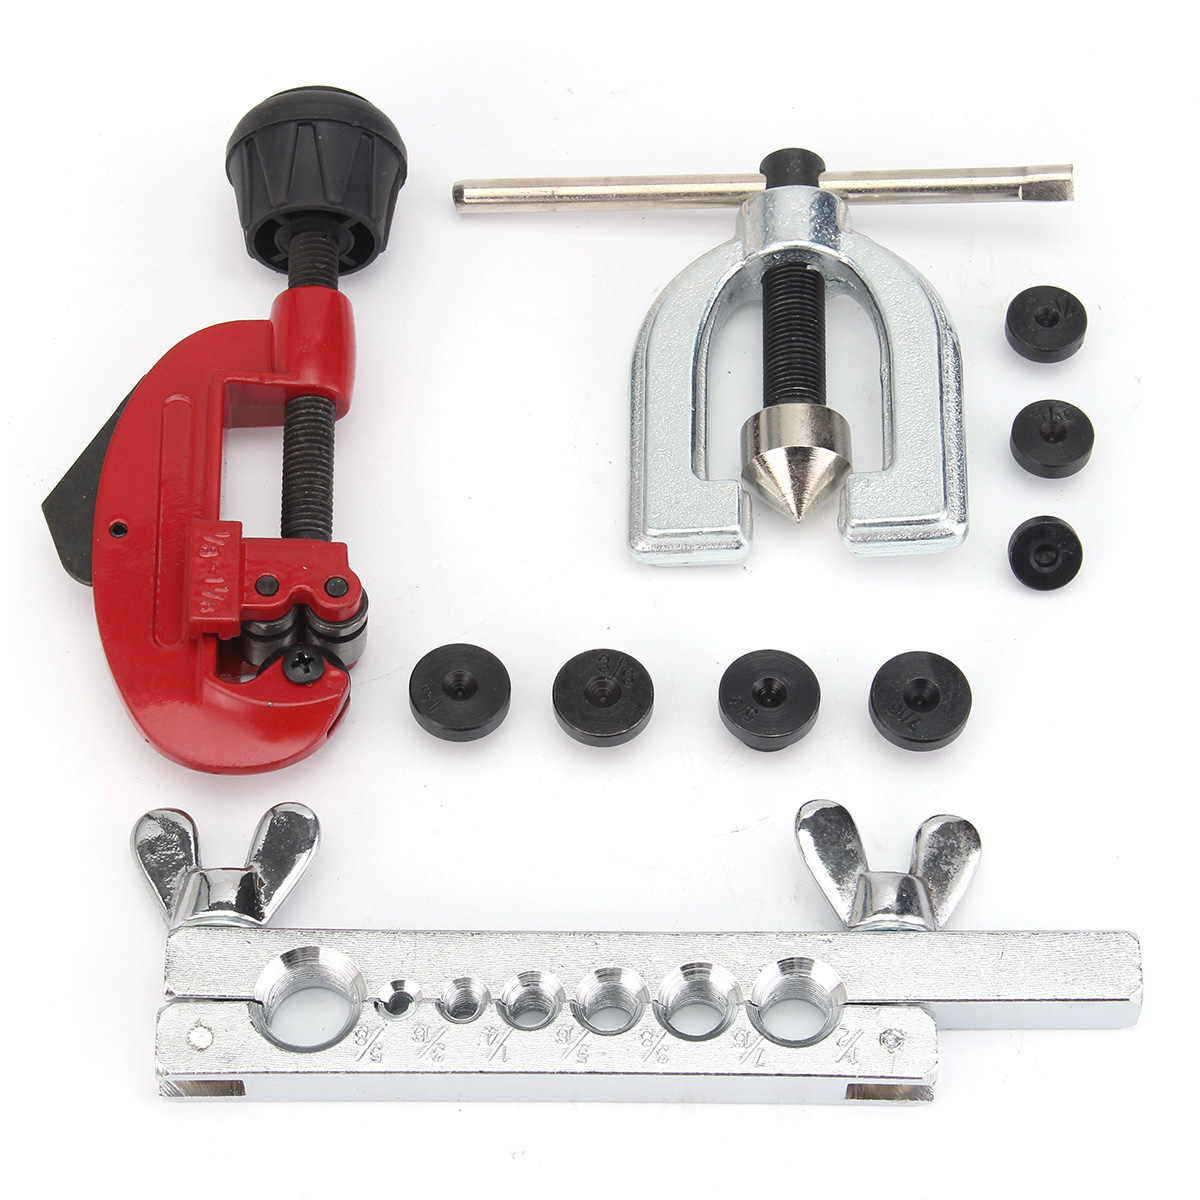 Double Flaring Tube Flare Tool Kits Pipe Cutter Air Conditioning Refrigeration CT-2034